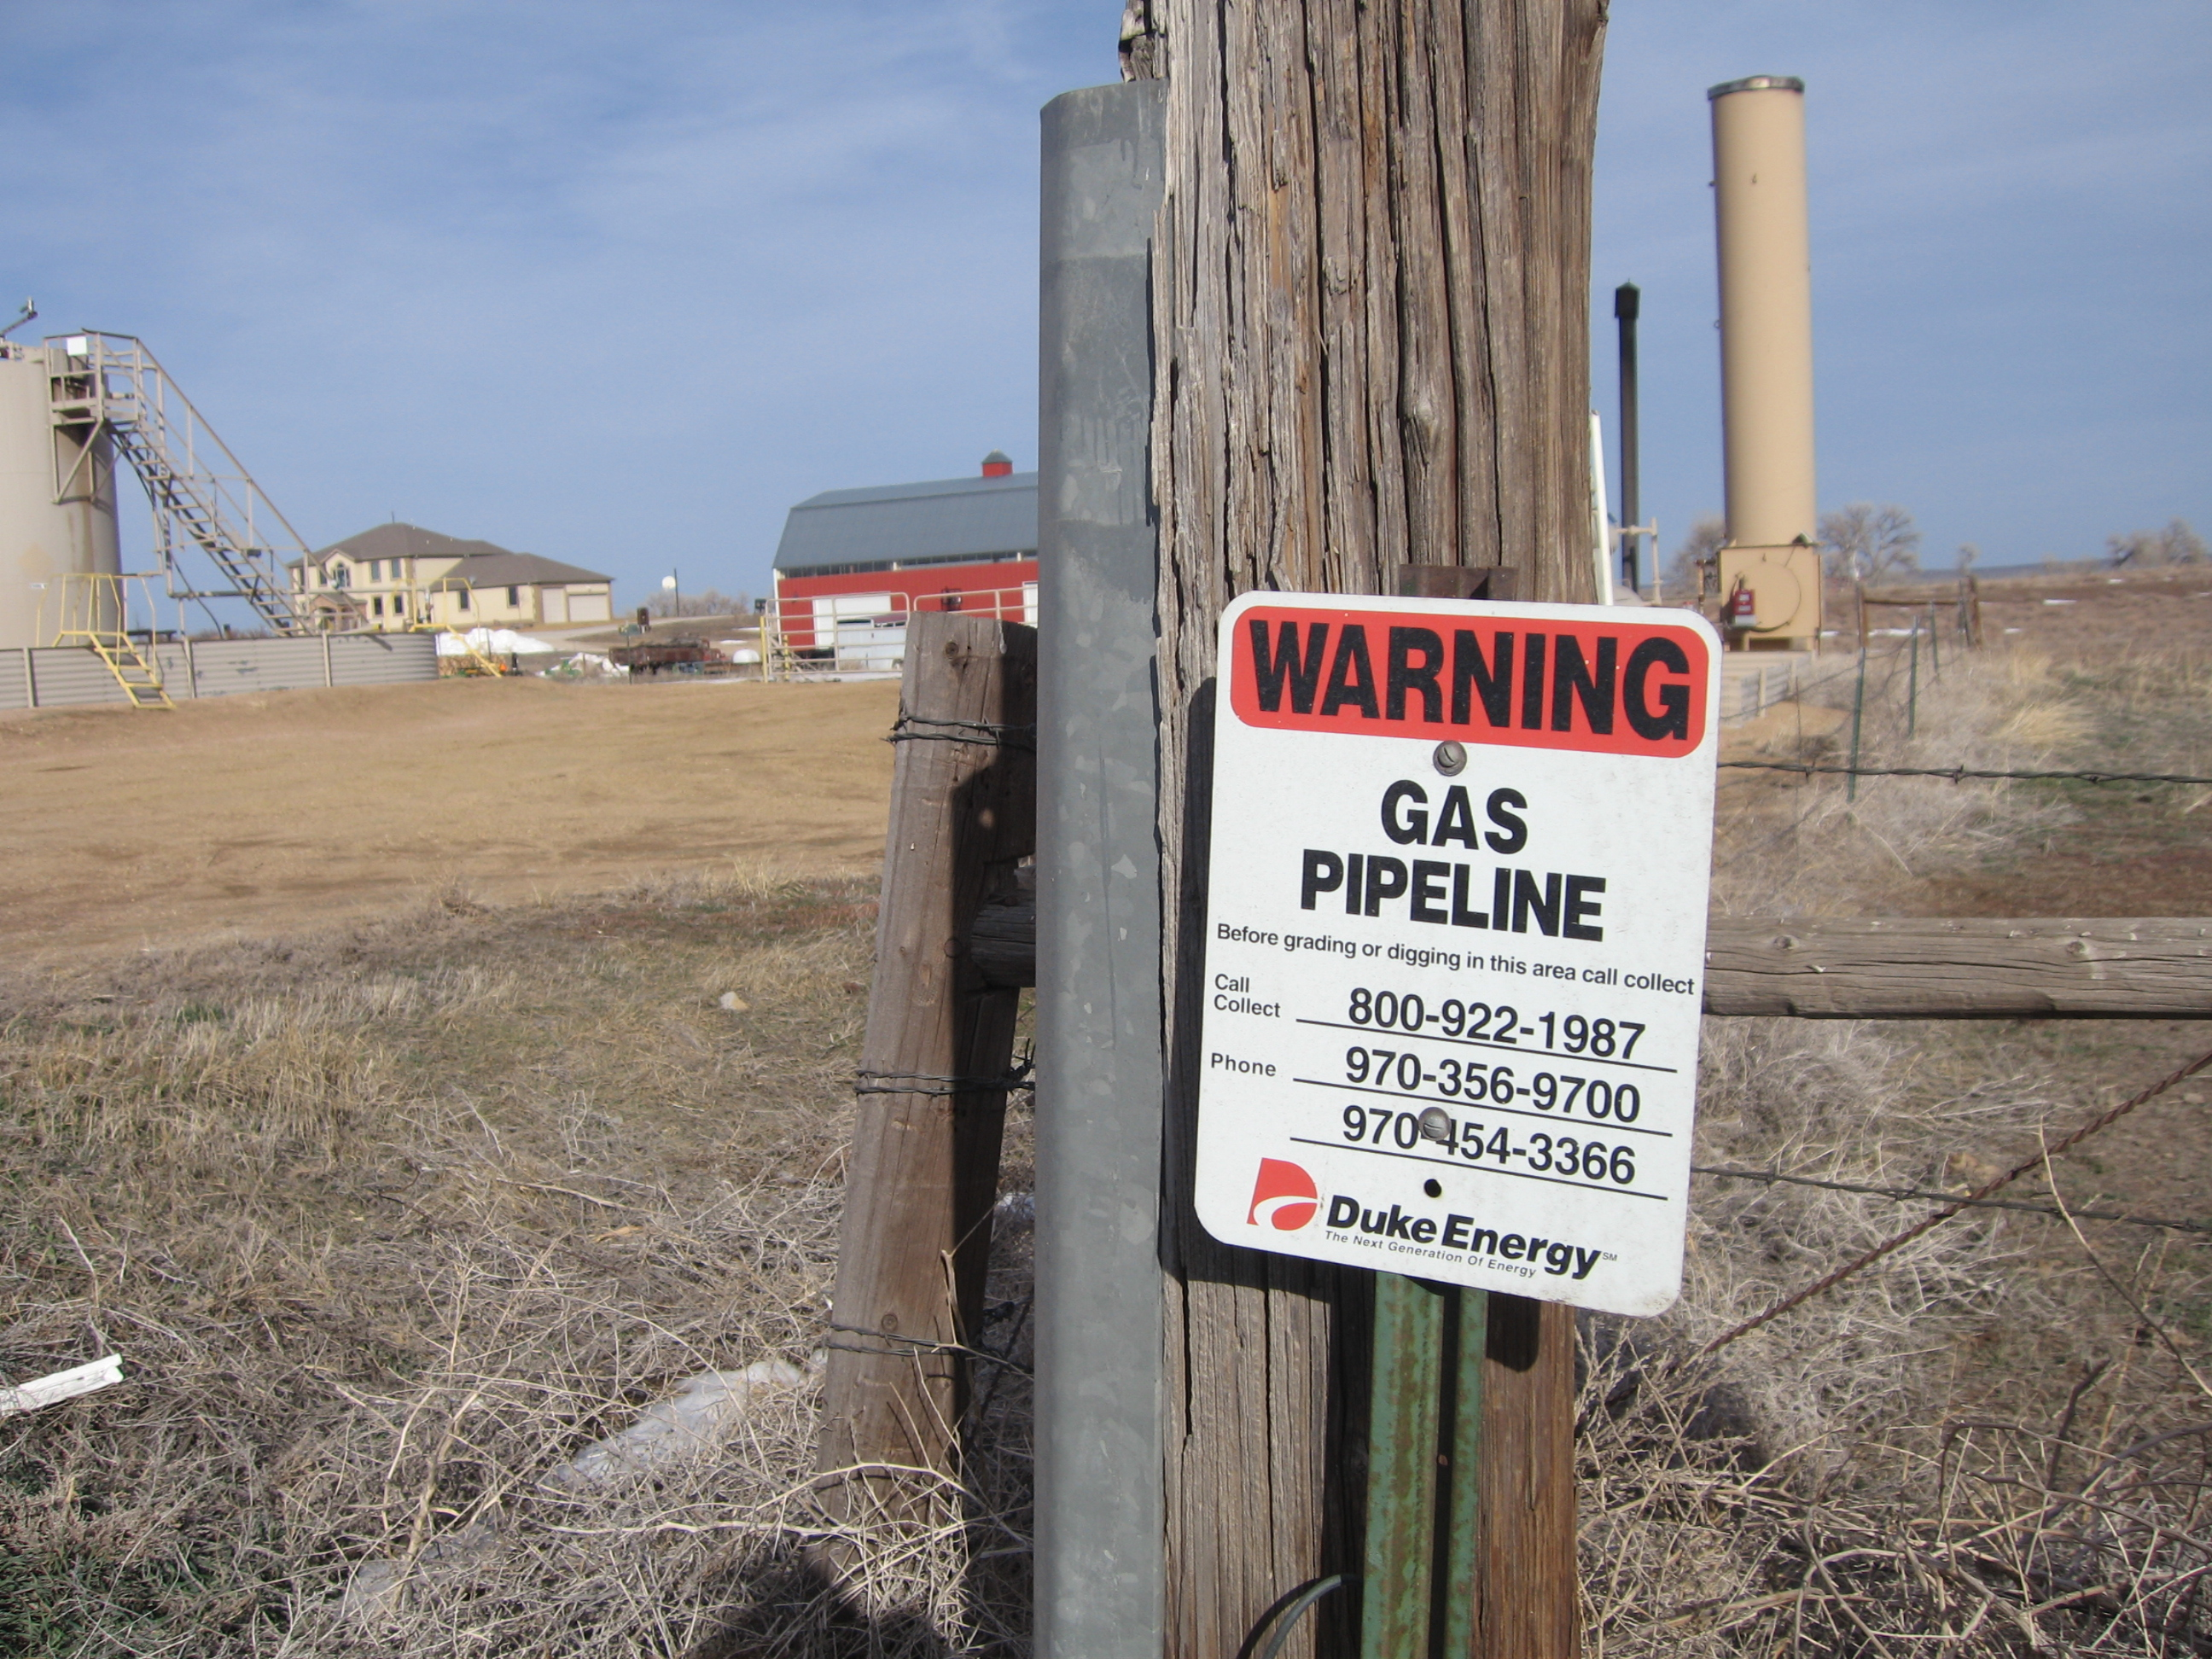 Photo: Fact-checking ad campaigns on fracking